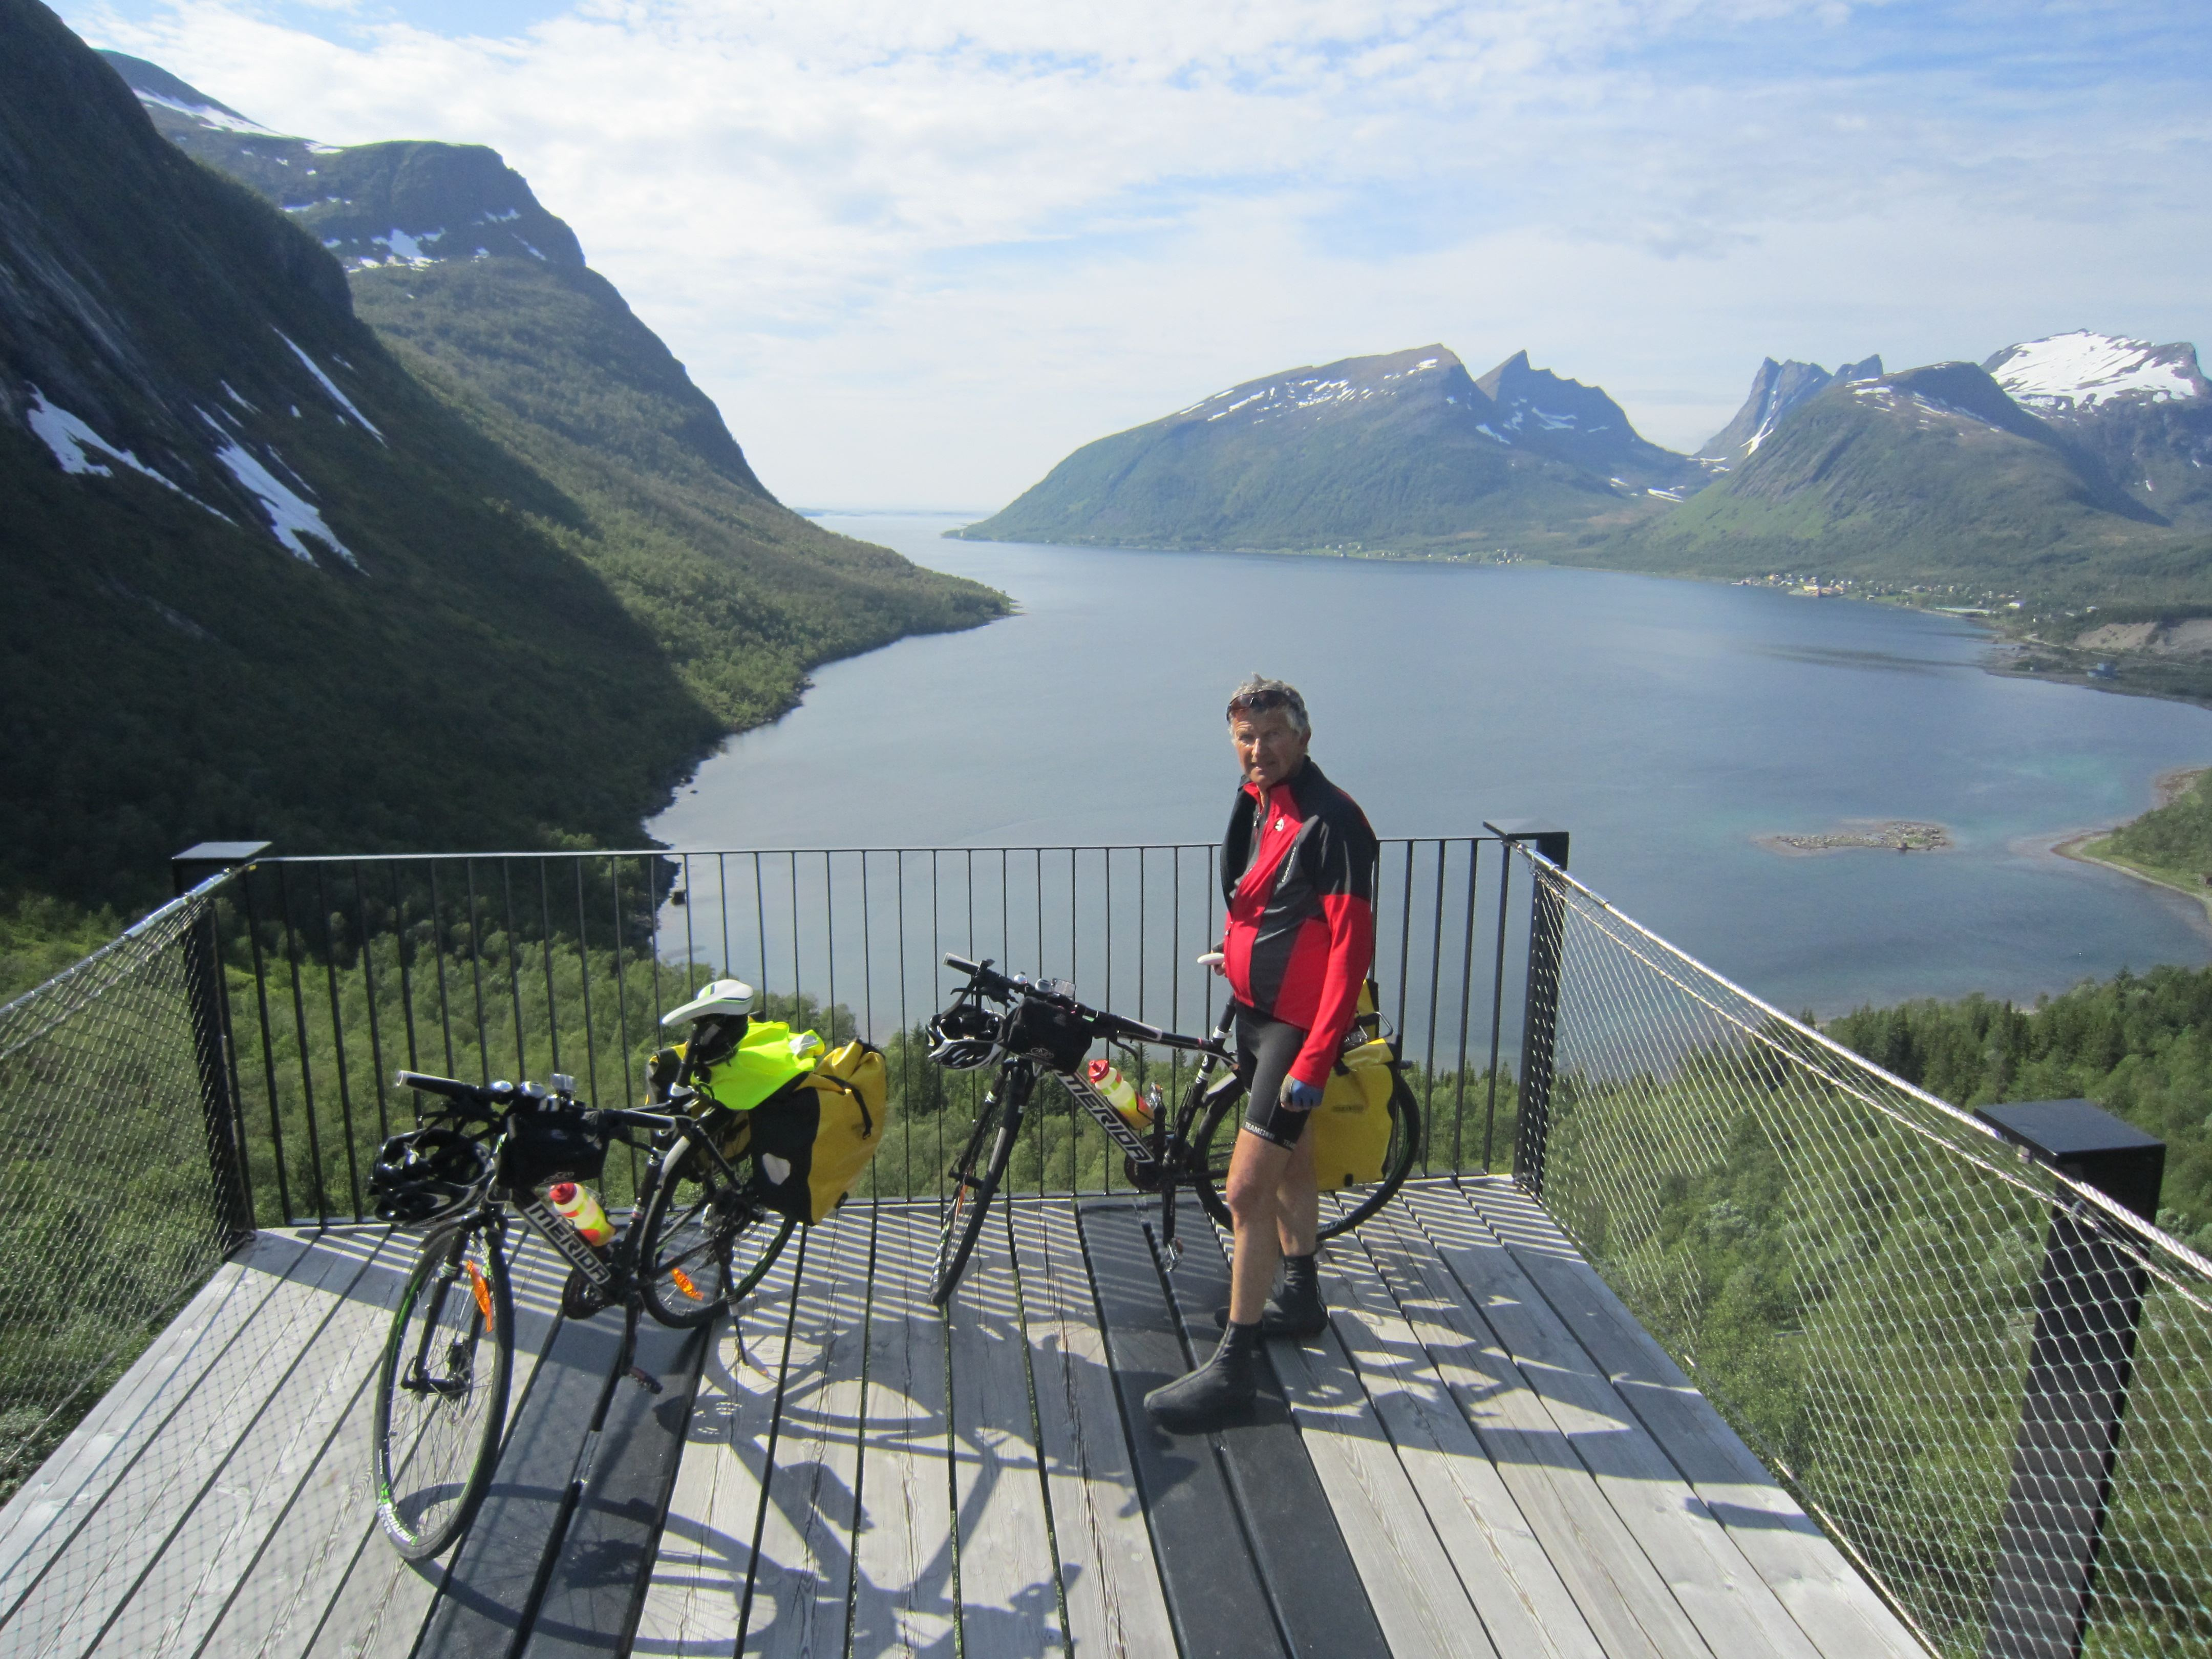 Britt Elton, Biking the Island of Senja – 8 days - Selfguided or guided with luggagetransport - Discover Norway